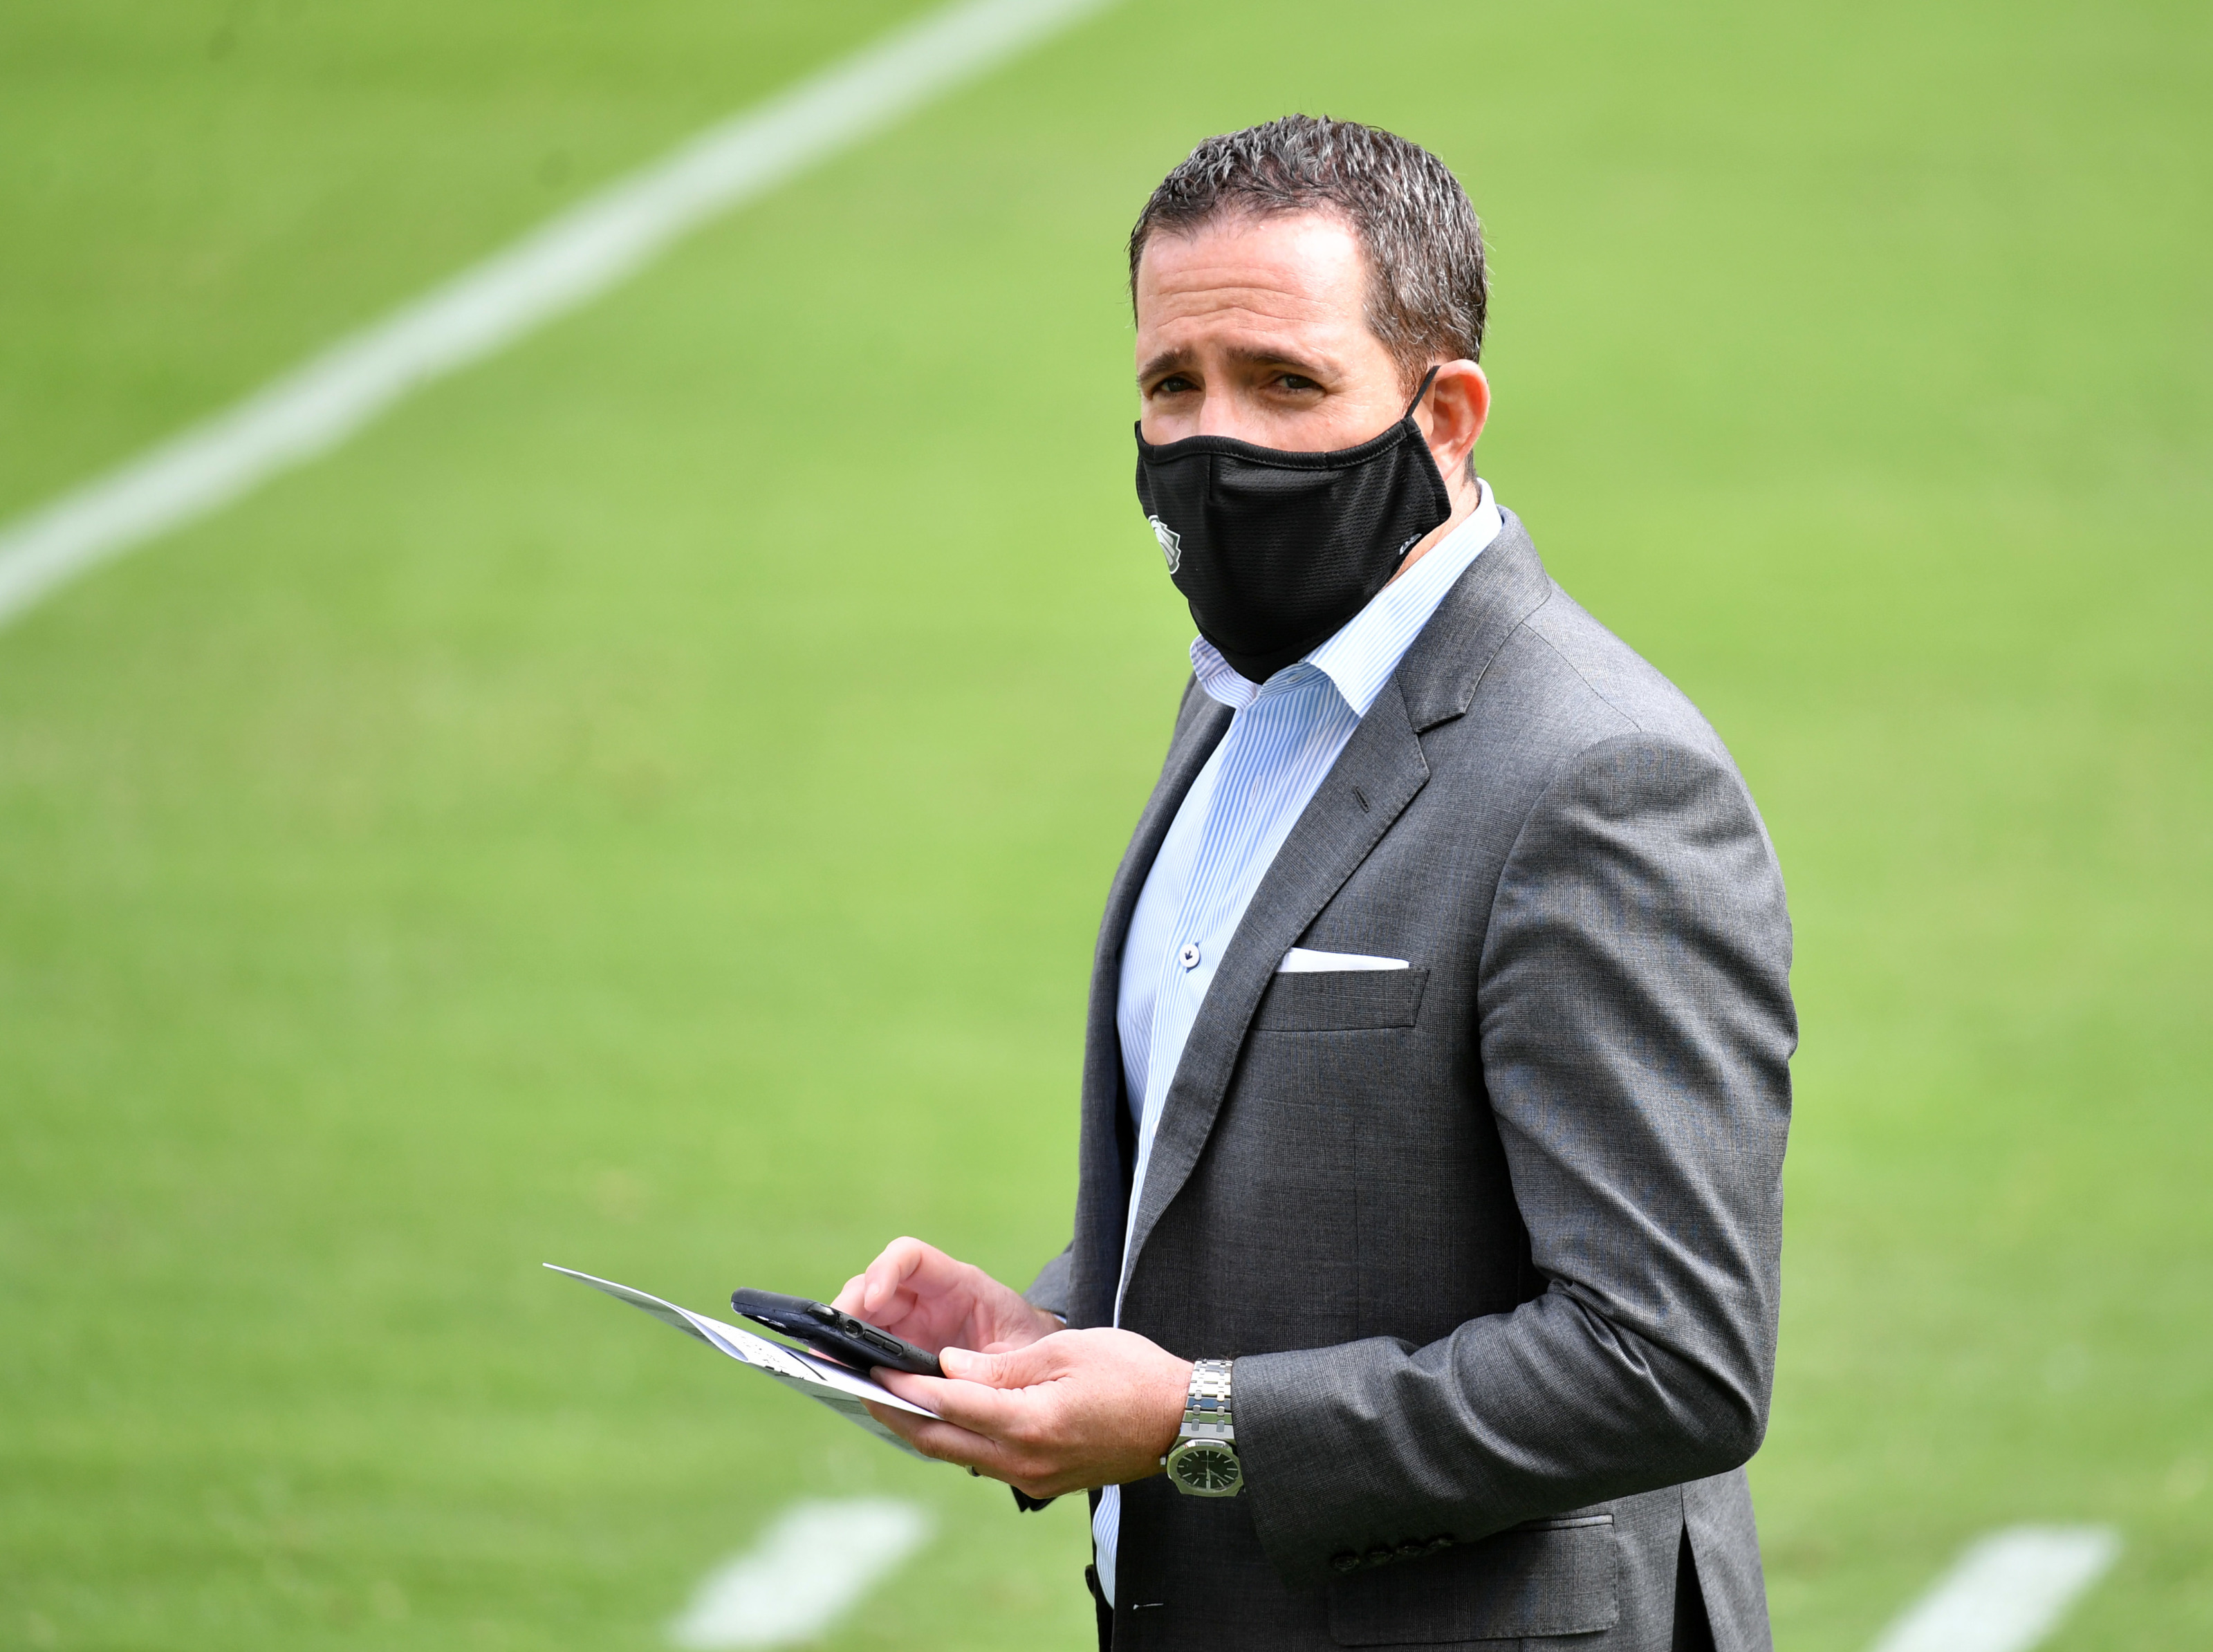 Sep 27, 2020; Philadelphia, Pennsylvania, USA; Philadelphia Eagles general manager Howie Roseman on field during warmups against the Cincinnati Bengals at Lincoln Financial Field. Mandatory Credit: Eric Hartline-USA TODAY Sports